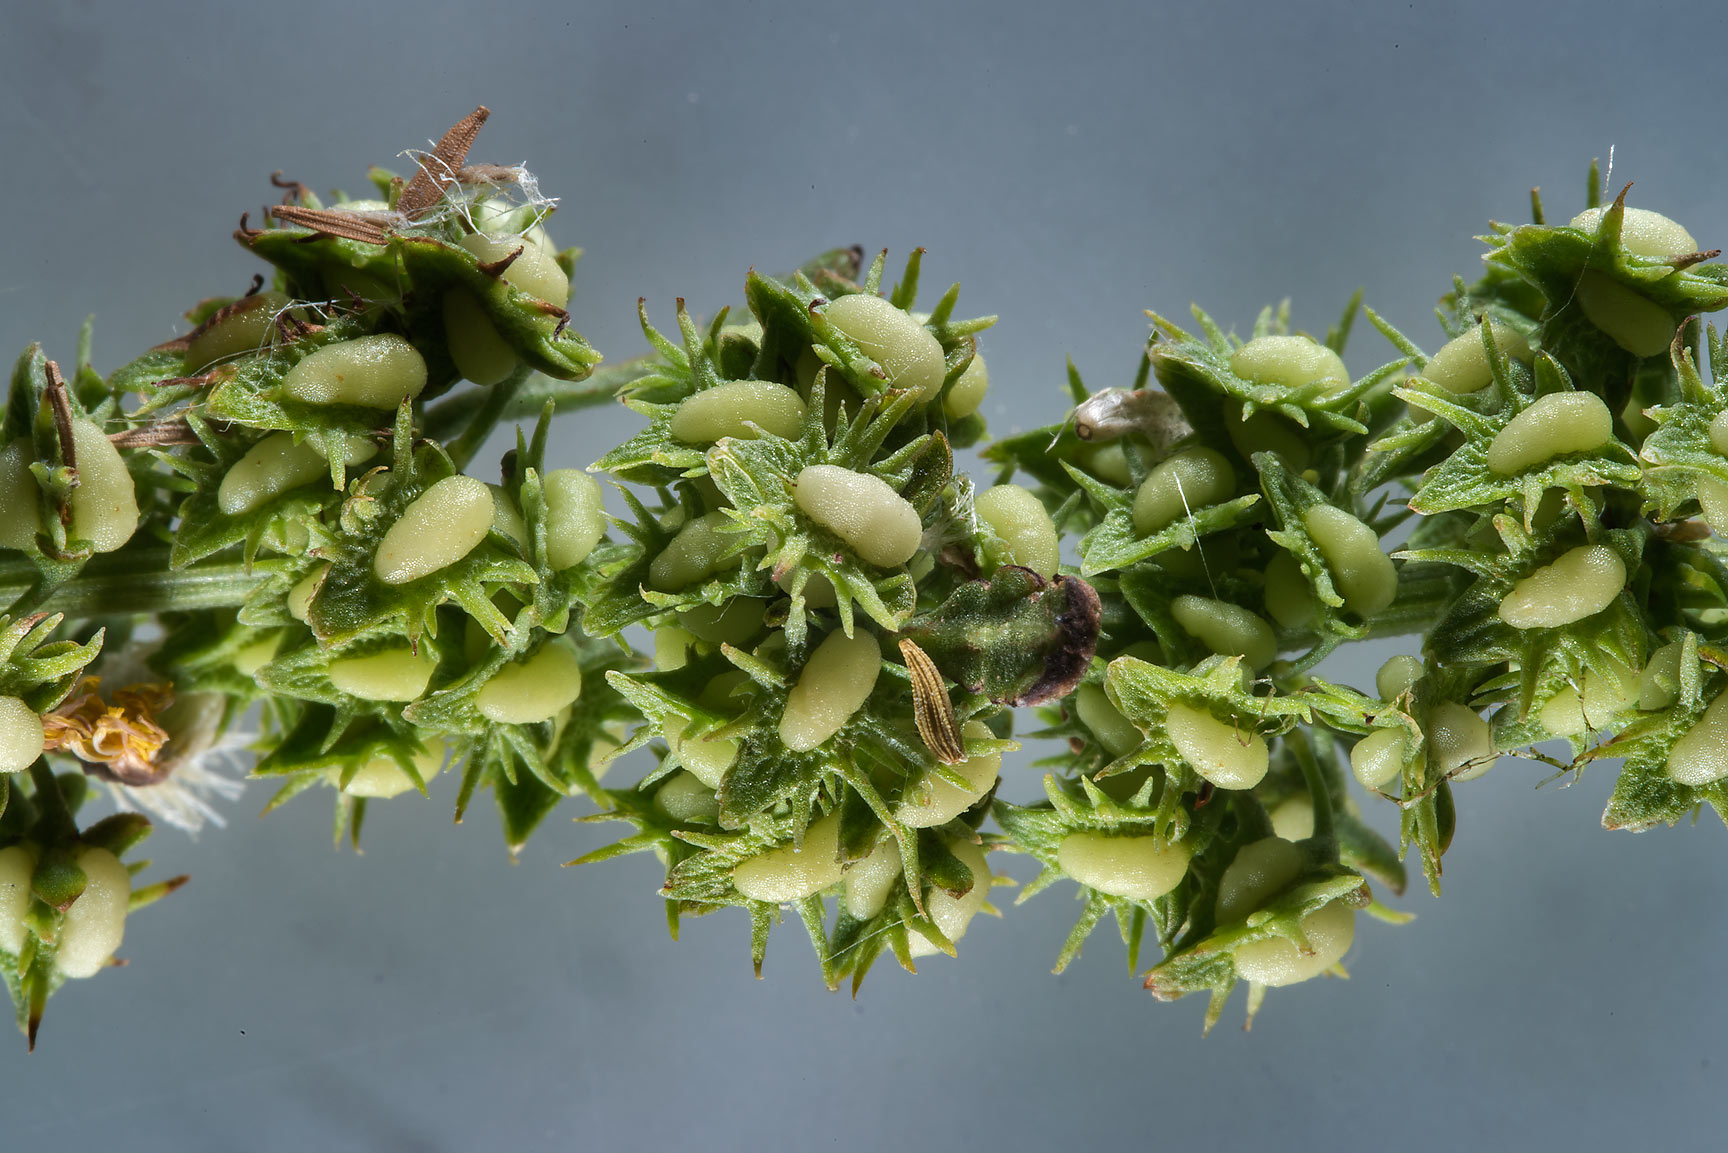 Aegean dock (Rumex dentatus) taken from Green...in Irkhaya (Irkaya) Farms. Qatar